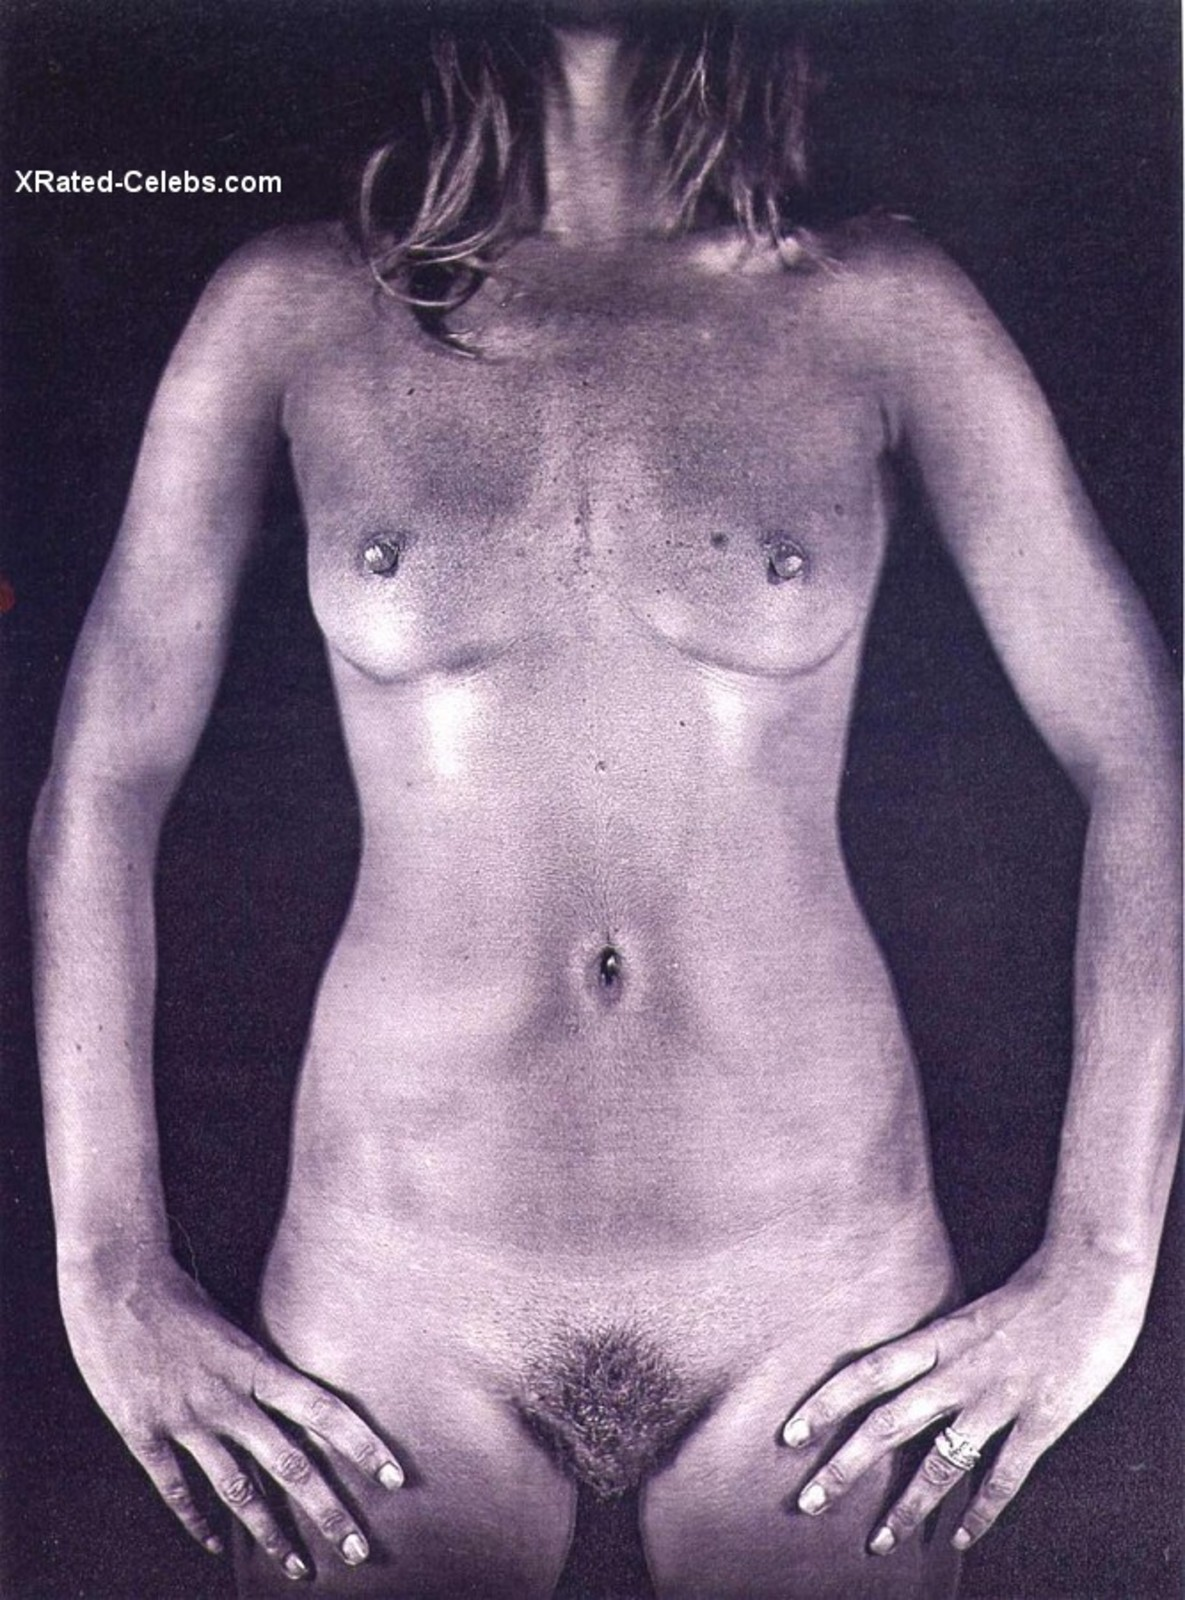 Commit error. Sexy kate moss naked sorry